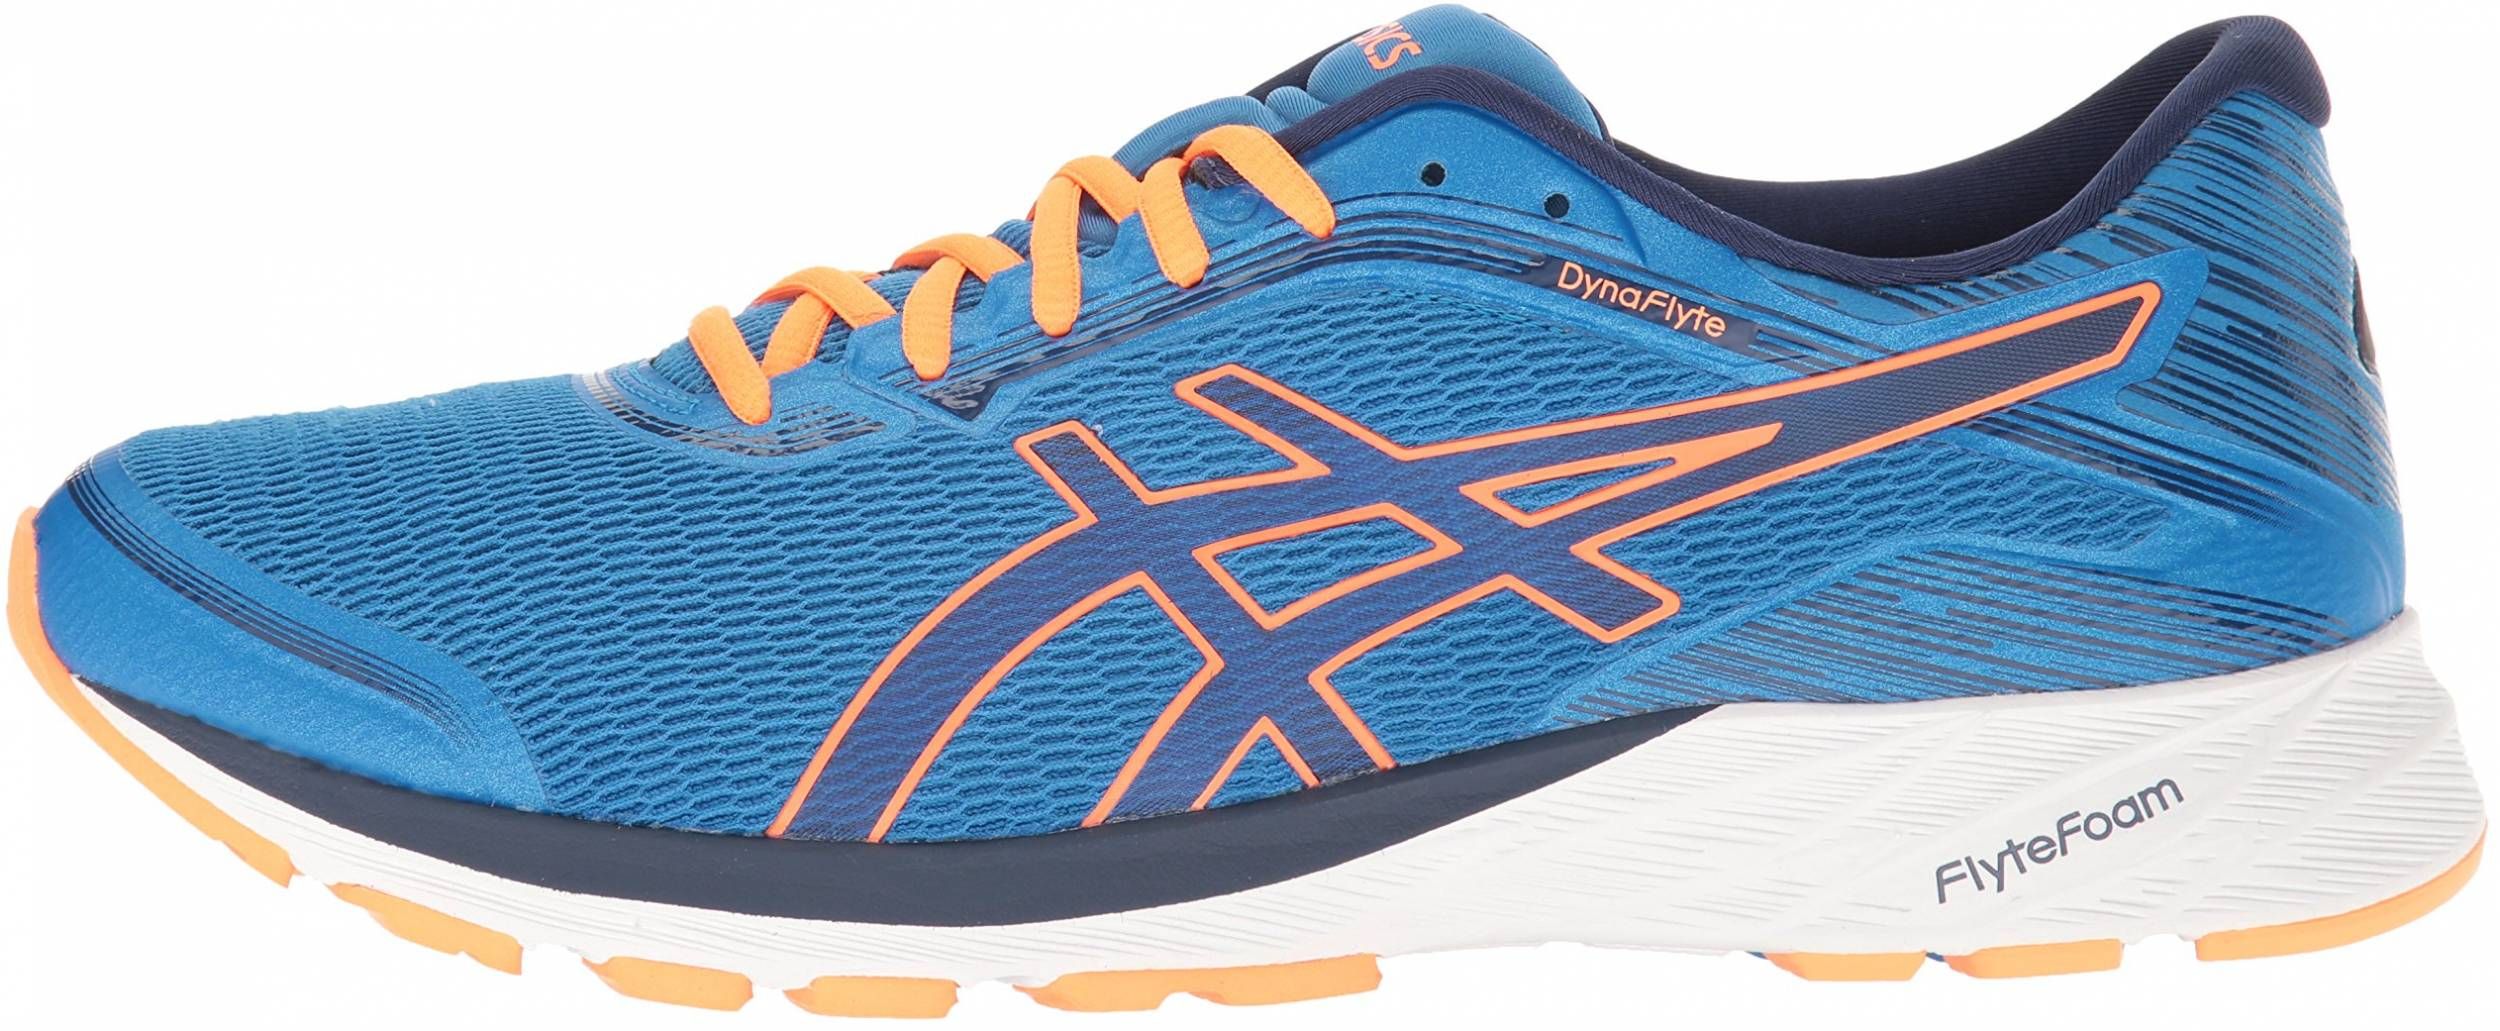 Asics DynaFlyte - Review 2021 - Facts, Deals ($55) | RunRepeat